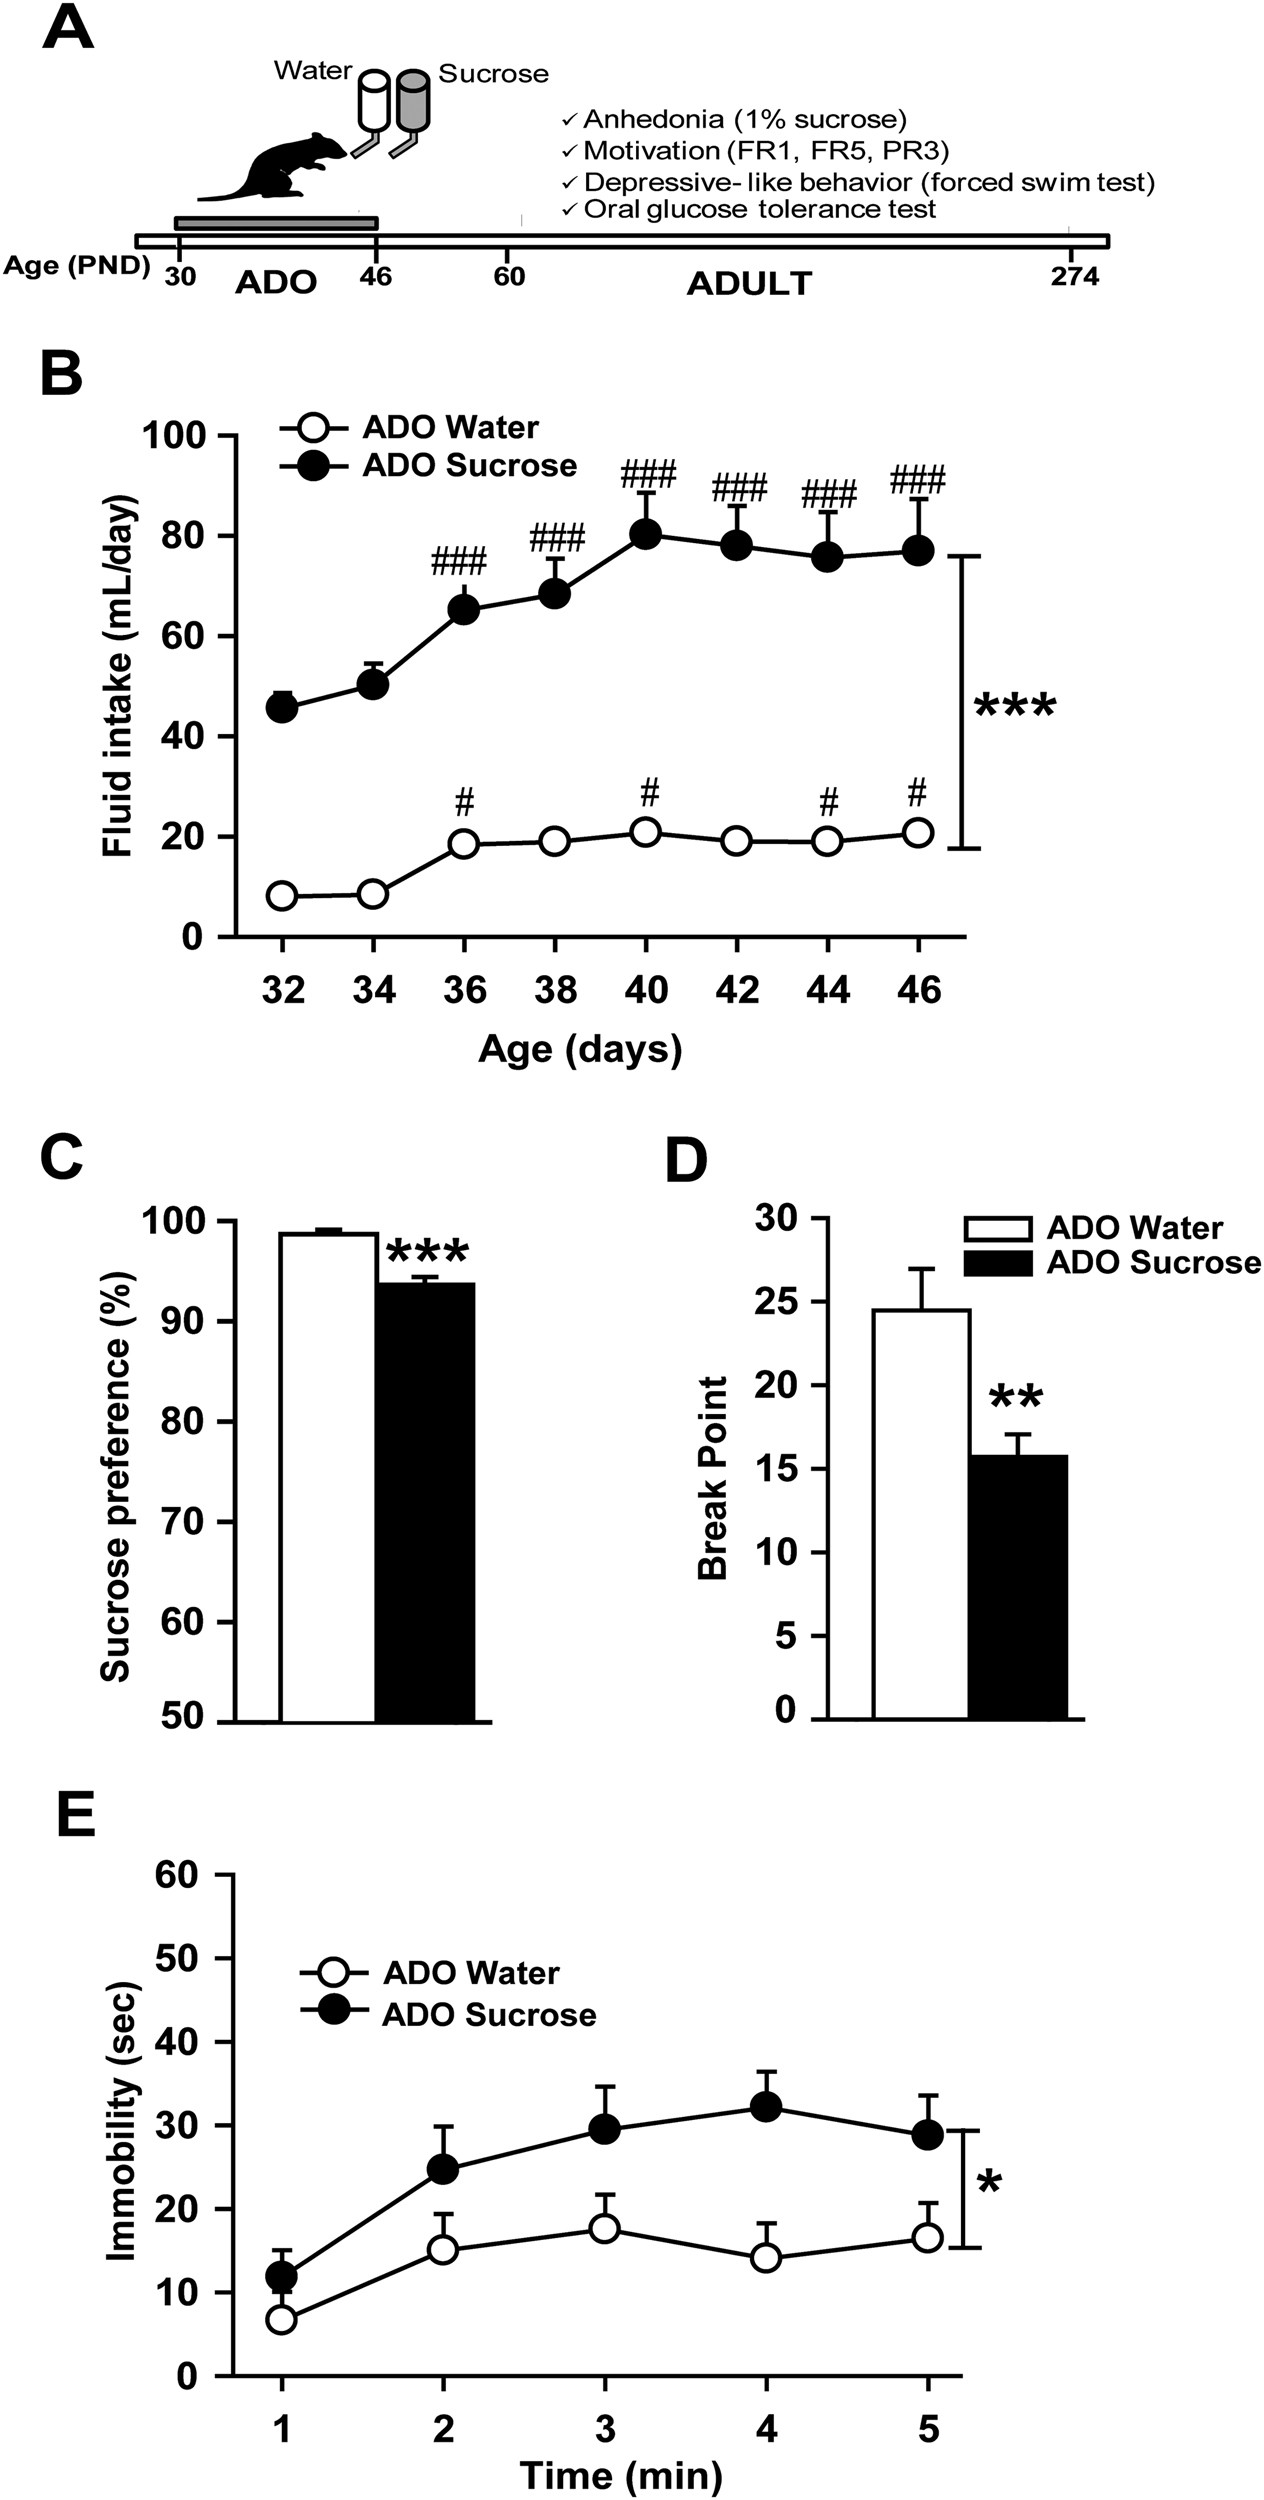 High Fructose Diet In Adolescence May >> Unlimited Sucrose Consumption During Adolescence Generates A